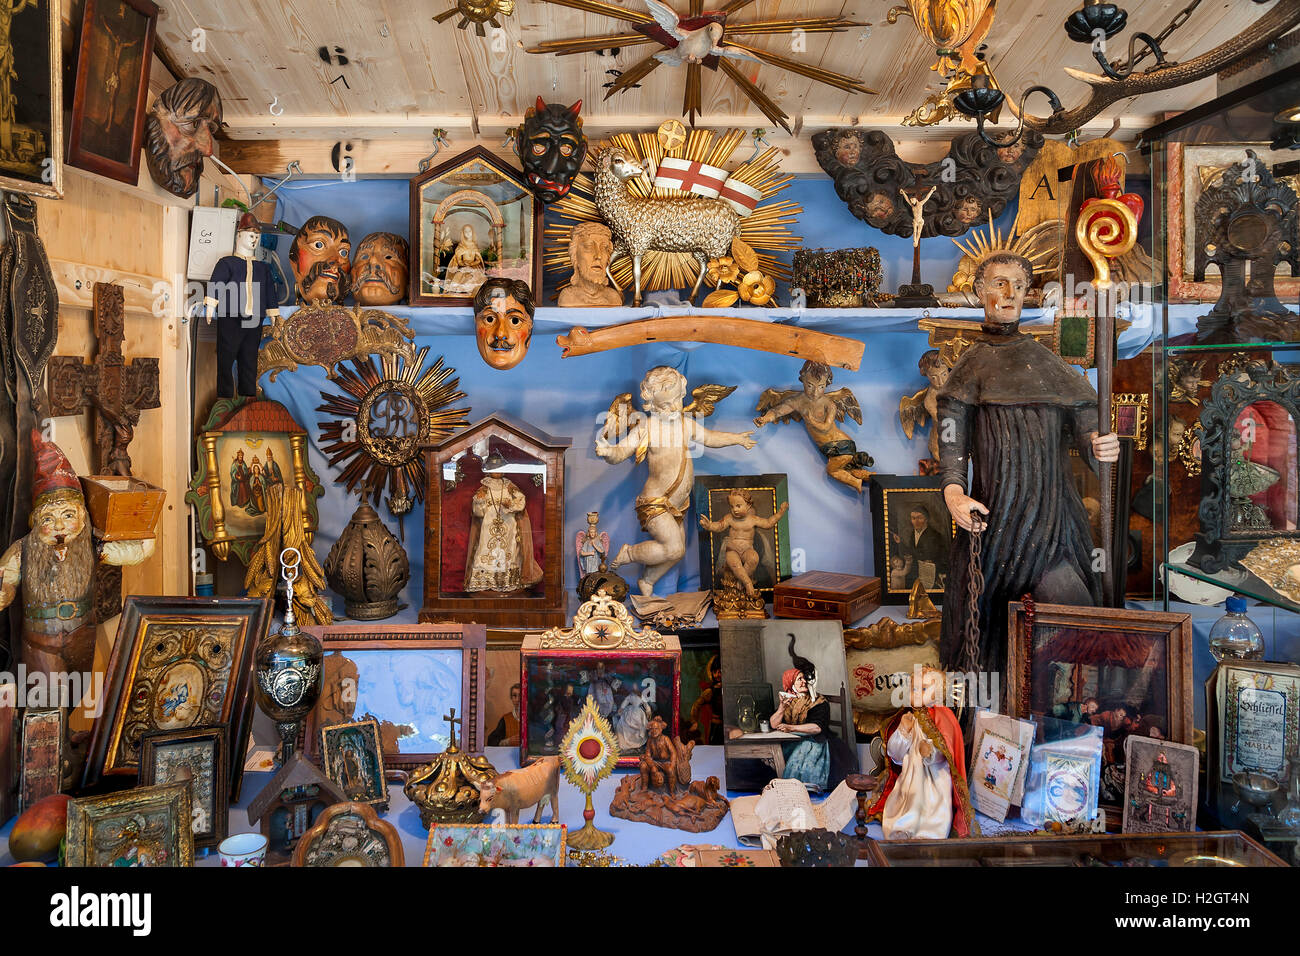 Booth with devotional objects, Auer Dult, Munich, Bavaria, Germany - Stock Image